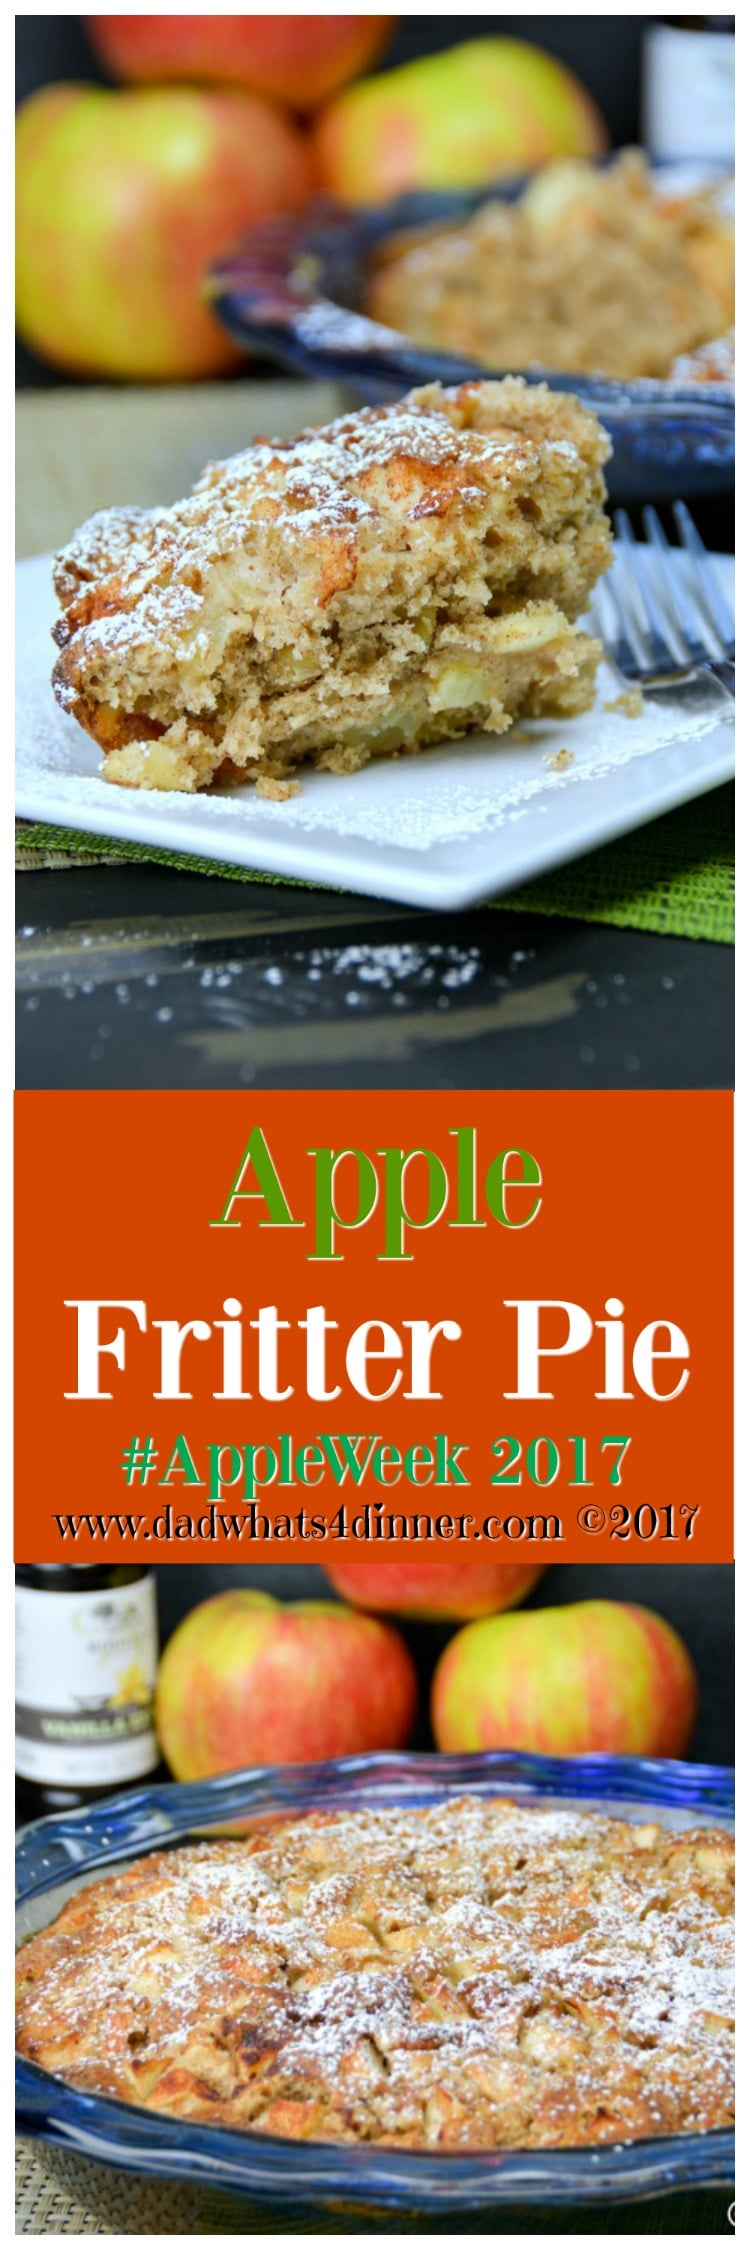 It's apple season and my Apple Fritter Pie will hit the spot. All the great taste of apple fritters but easily baked in a pie pan.www.dadwhats4dinner.com #spon #AppleWeek2017 #Fall #Apples #applepie